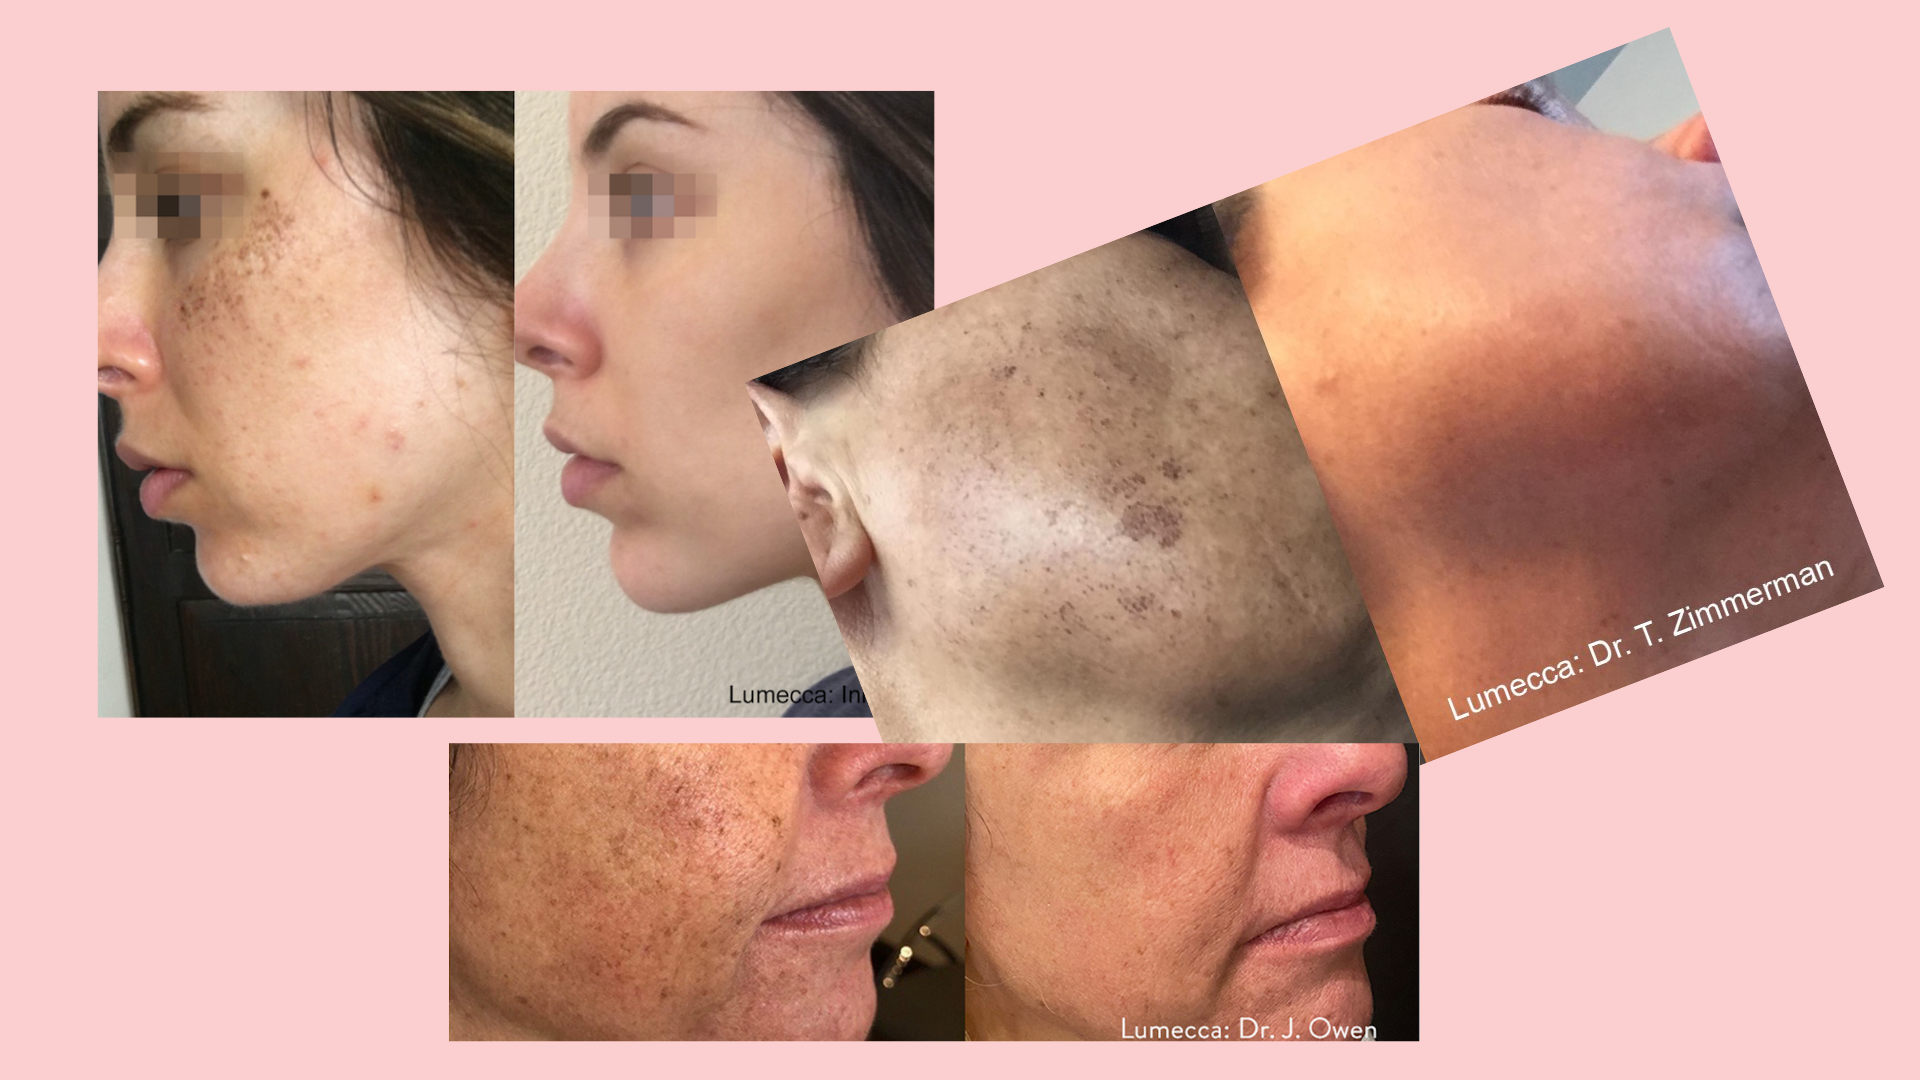 Luxe Bible Reviews Lumecca IPL at the Dr David Jack Clinic: Typical results after 3-6 treatments